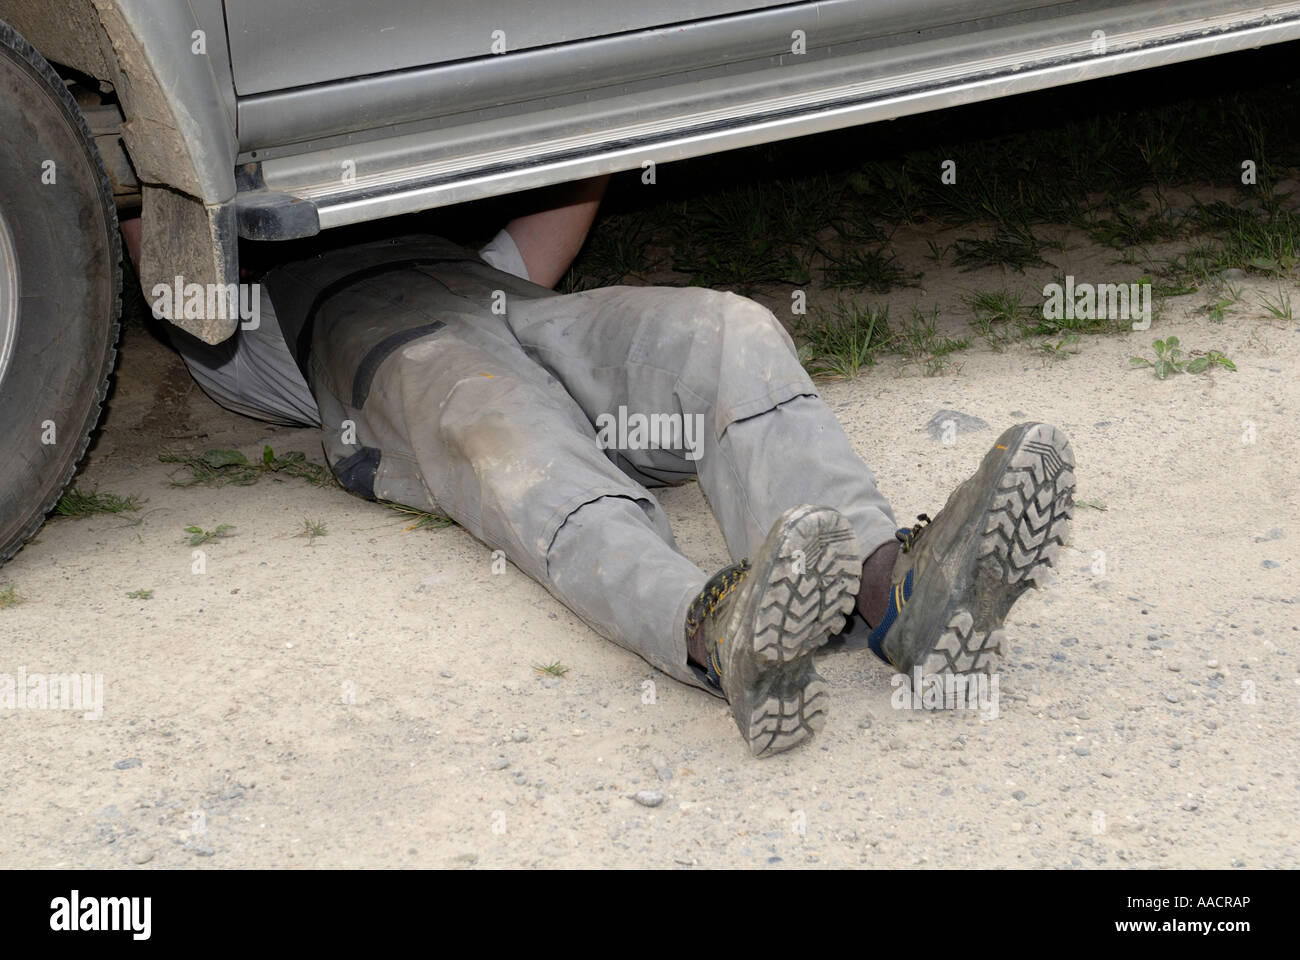 Man under a broke-down vehicle, Germany, Europe Stock Photo